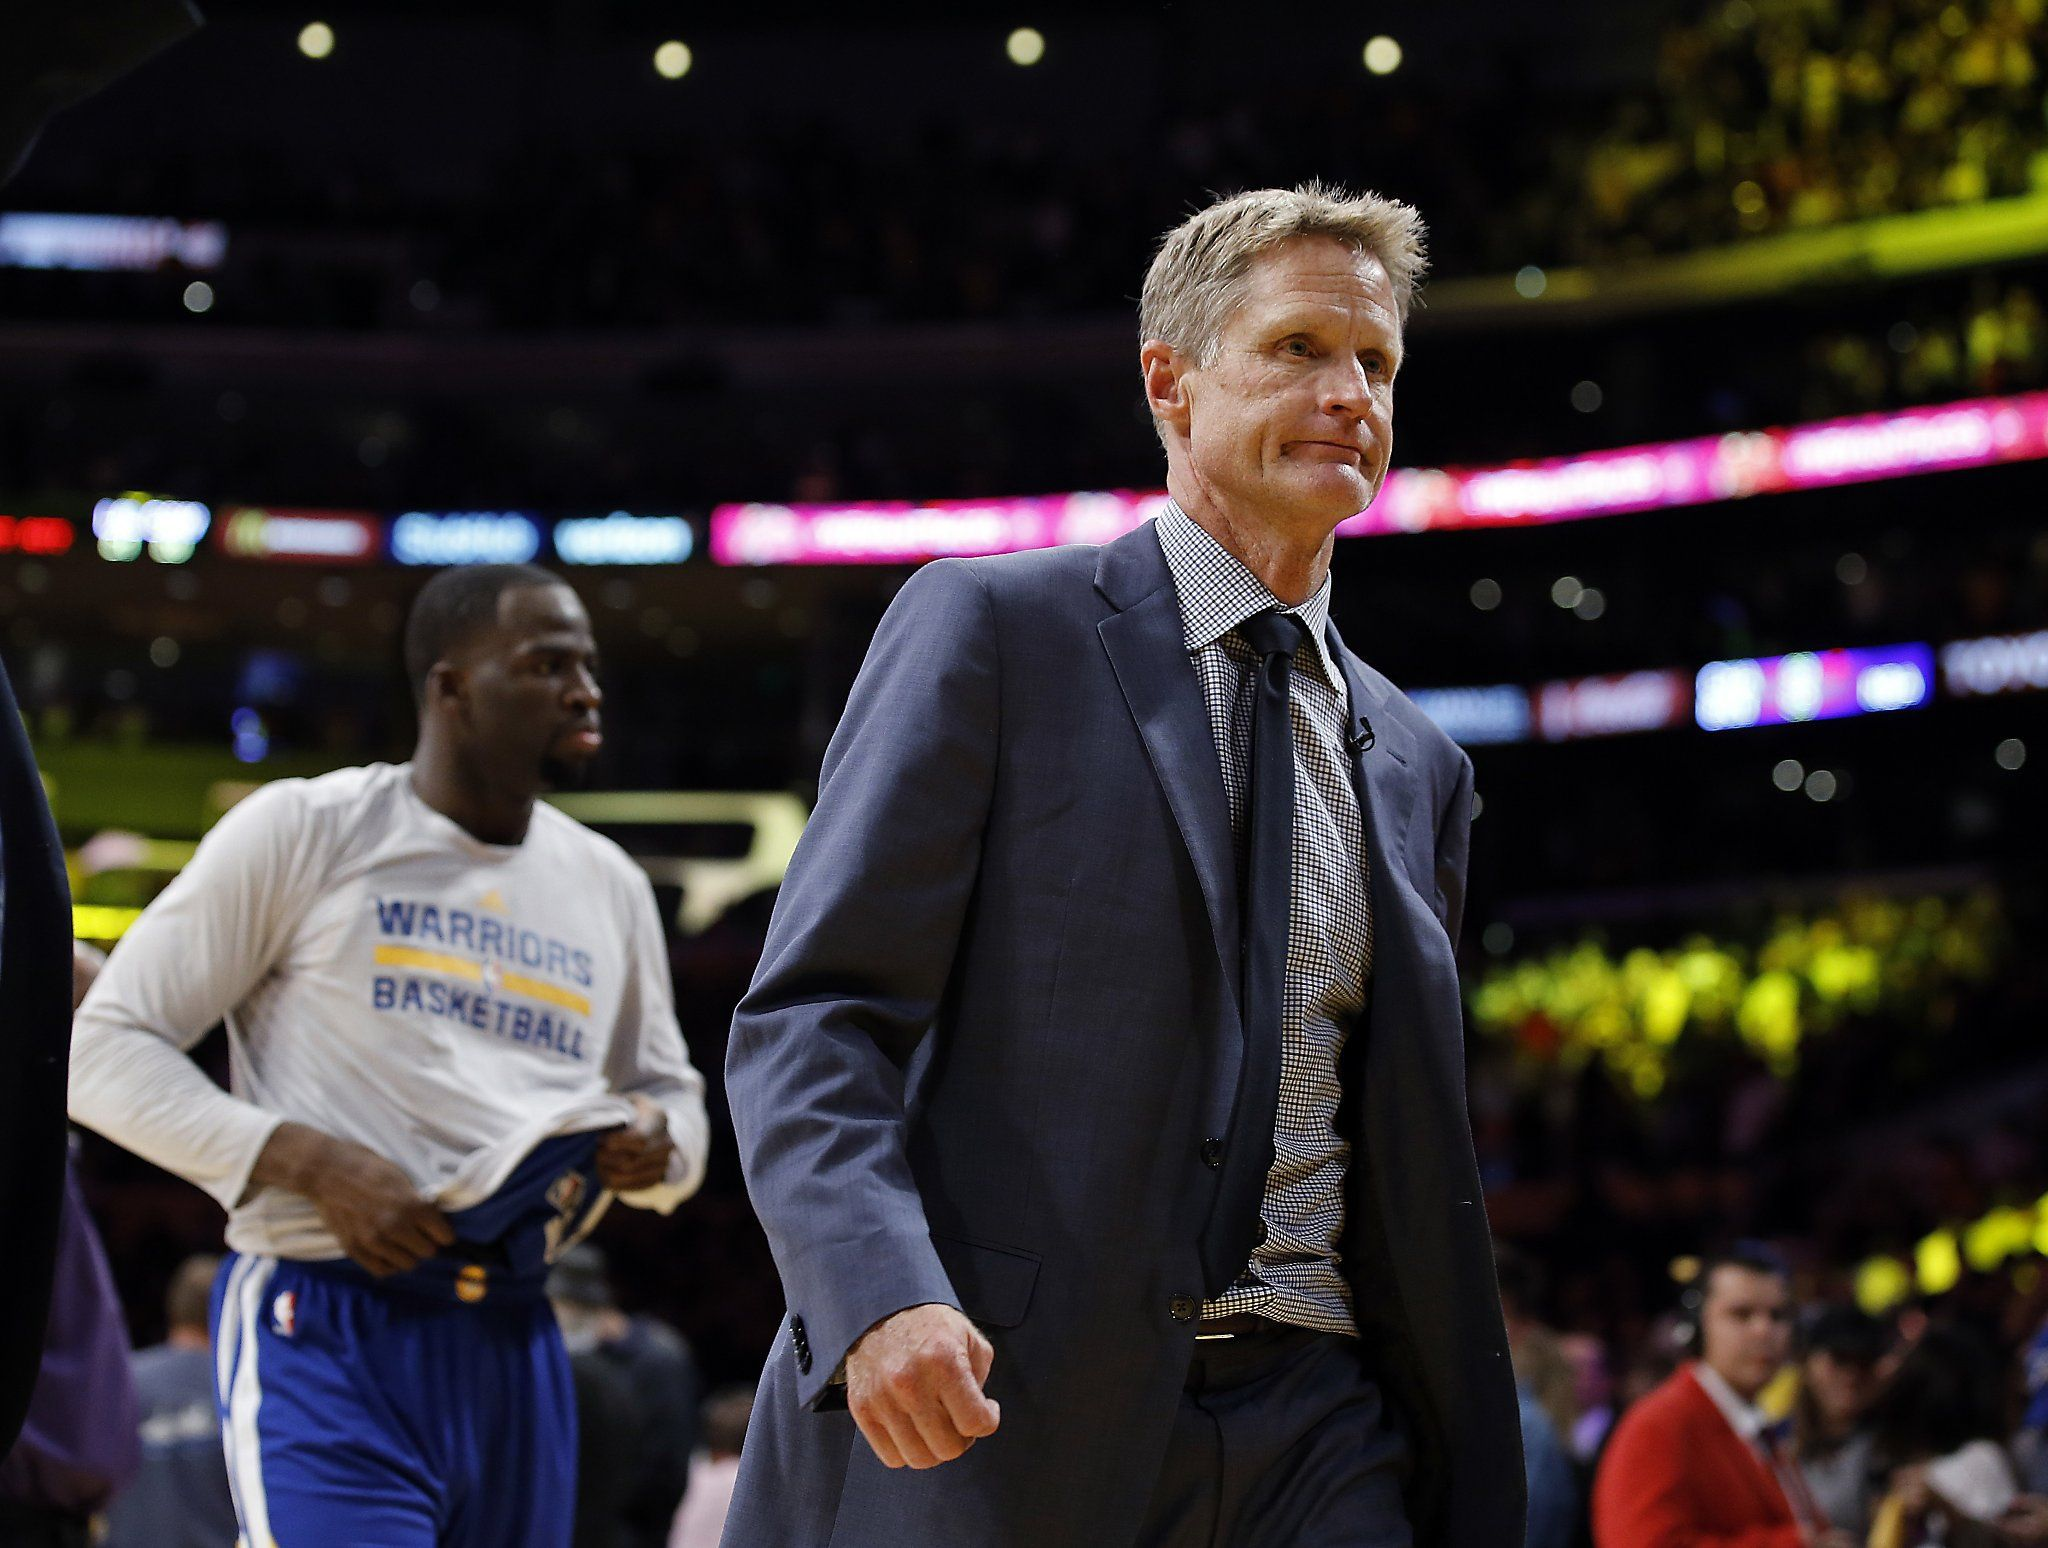 Warriors game day Can Golden State stay healthy in no